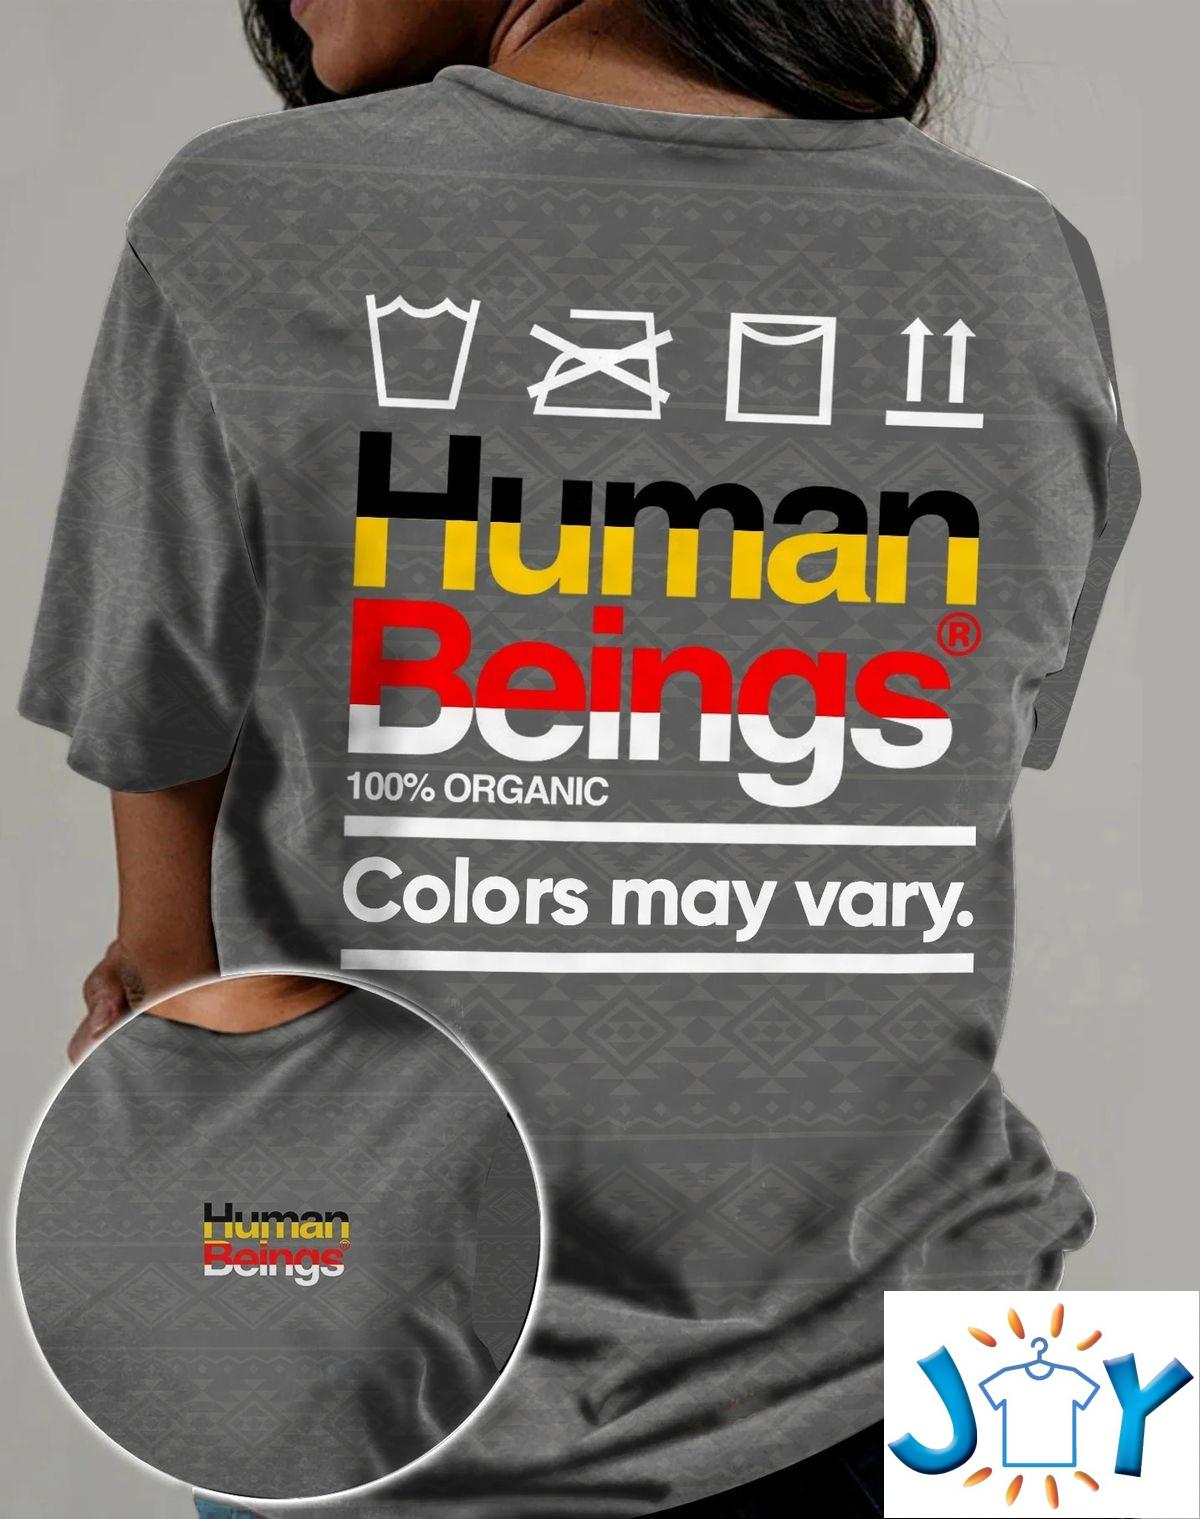 Native Indigenous Human Being 100% Organic Colors May Vary 3D All Over Print T-shirt, Hoodie